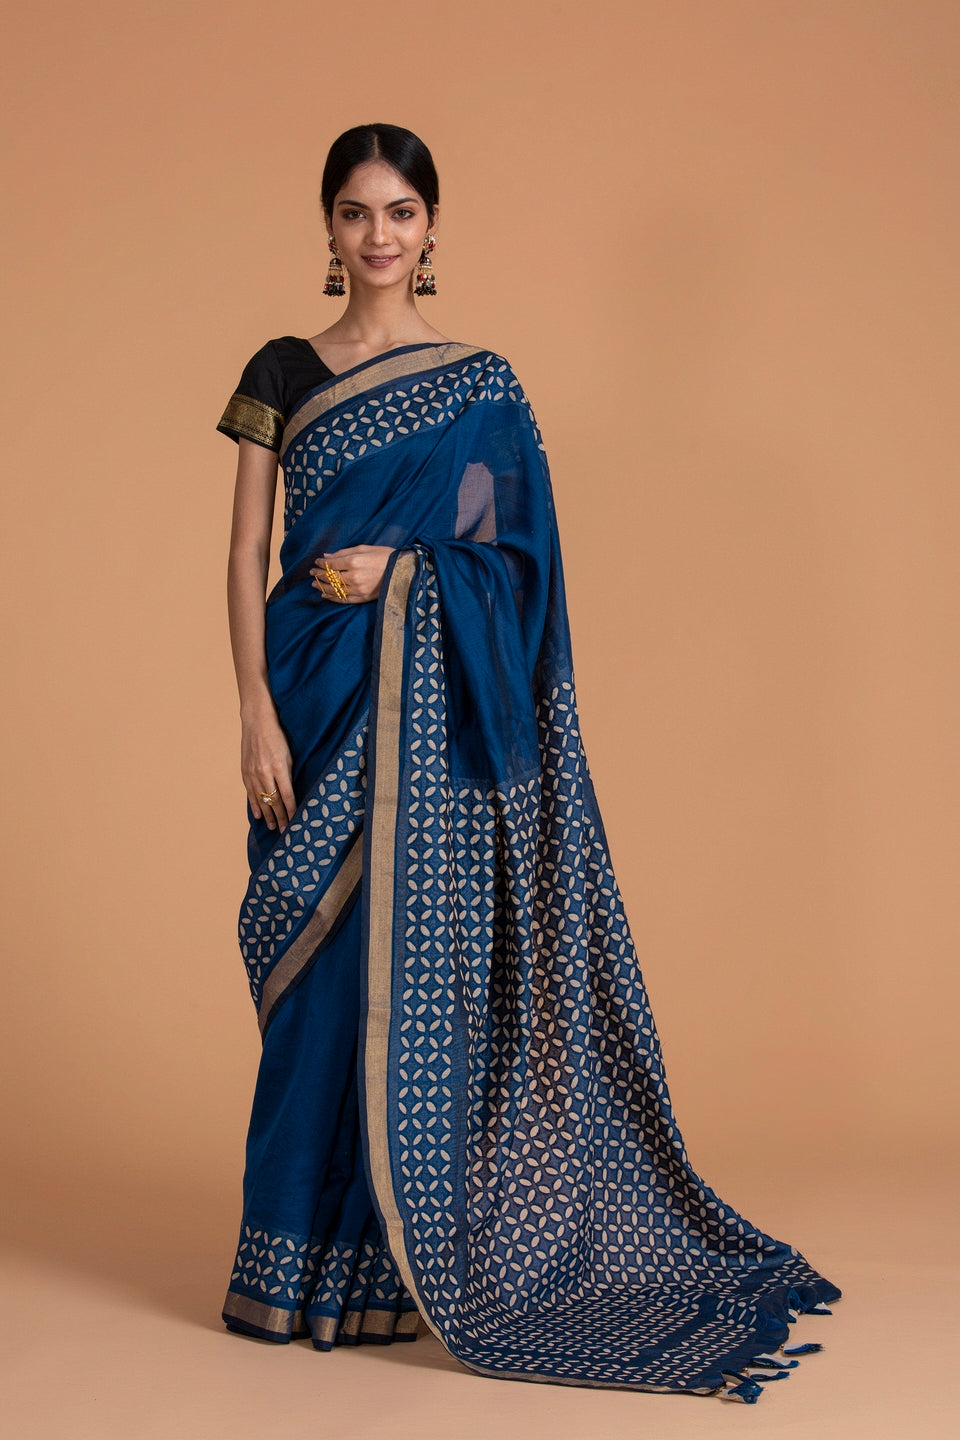 Khuddi Motif Chanderi Applique Saree, Navy Blue